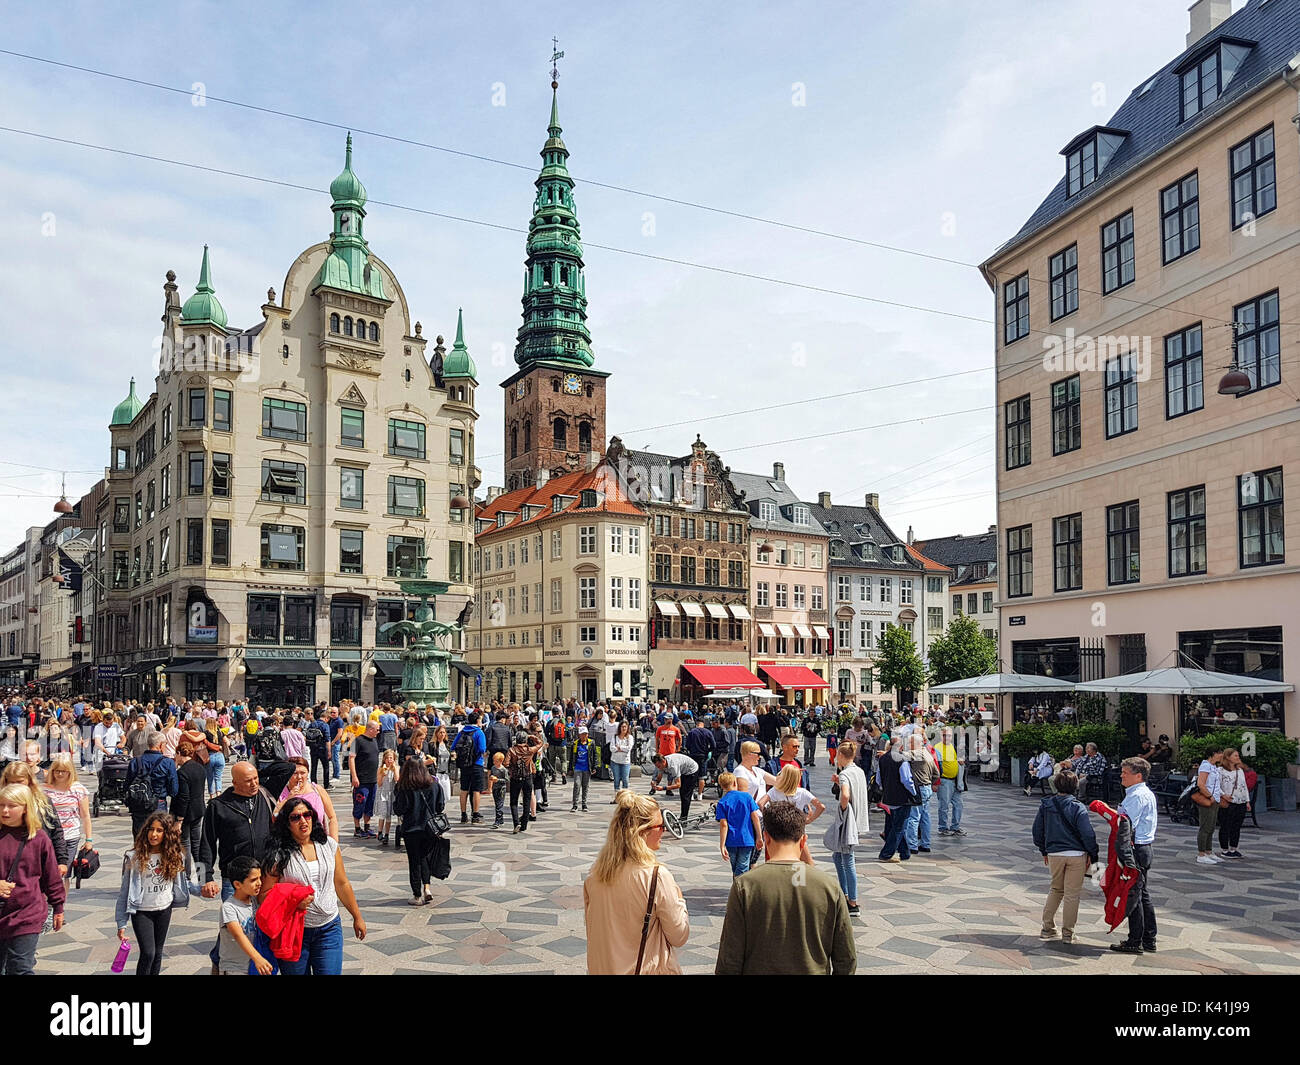 Copenhagen, Denmark - July 24, 2017: Tourists visiting  Amager Square (Amagertorv). It is one of the oldest square of Copenhagen - Stock Image